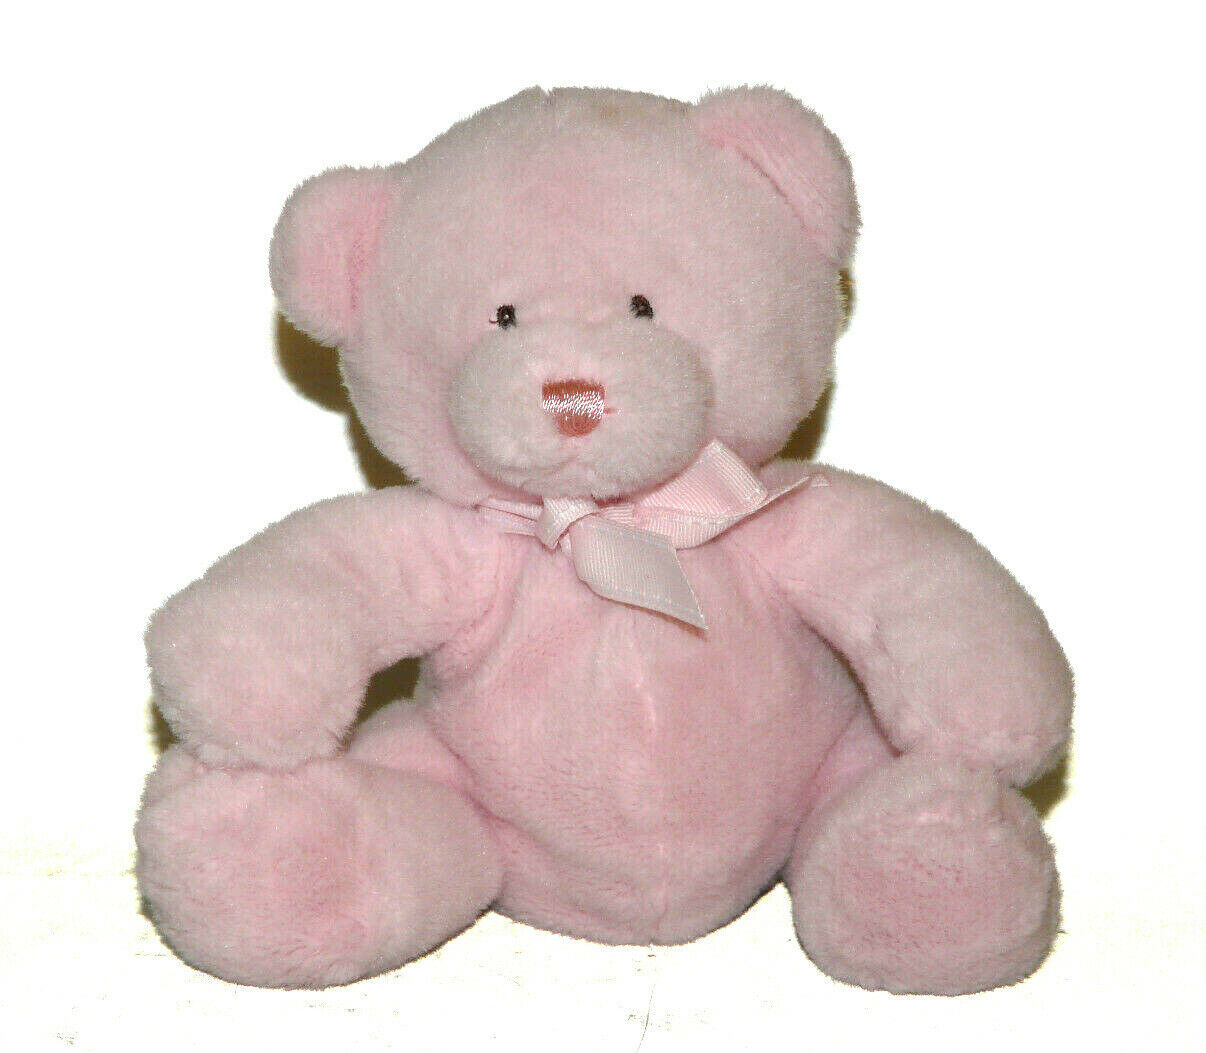 Primary image for Baby Ganz Pink Teddy Bear Rattle Plush Lovey 8 inch BG1780 Stuffed Animal